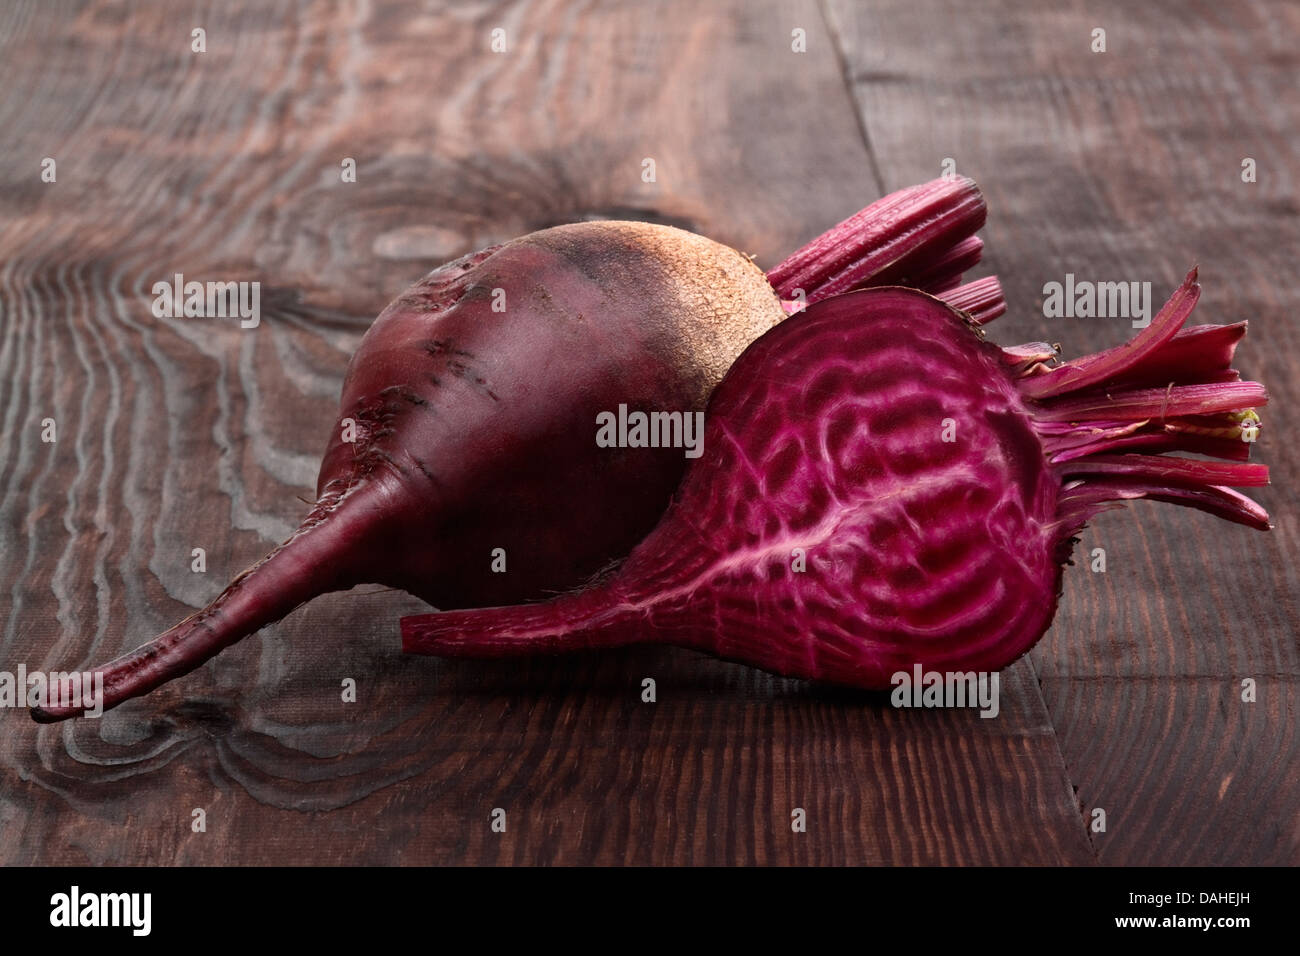 ripe beets on a wooden table - Stock Image